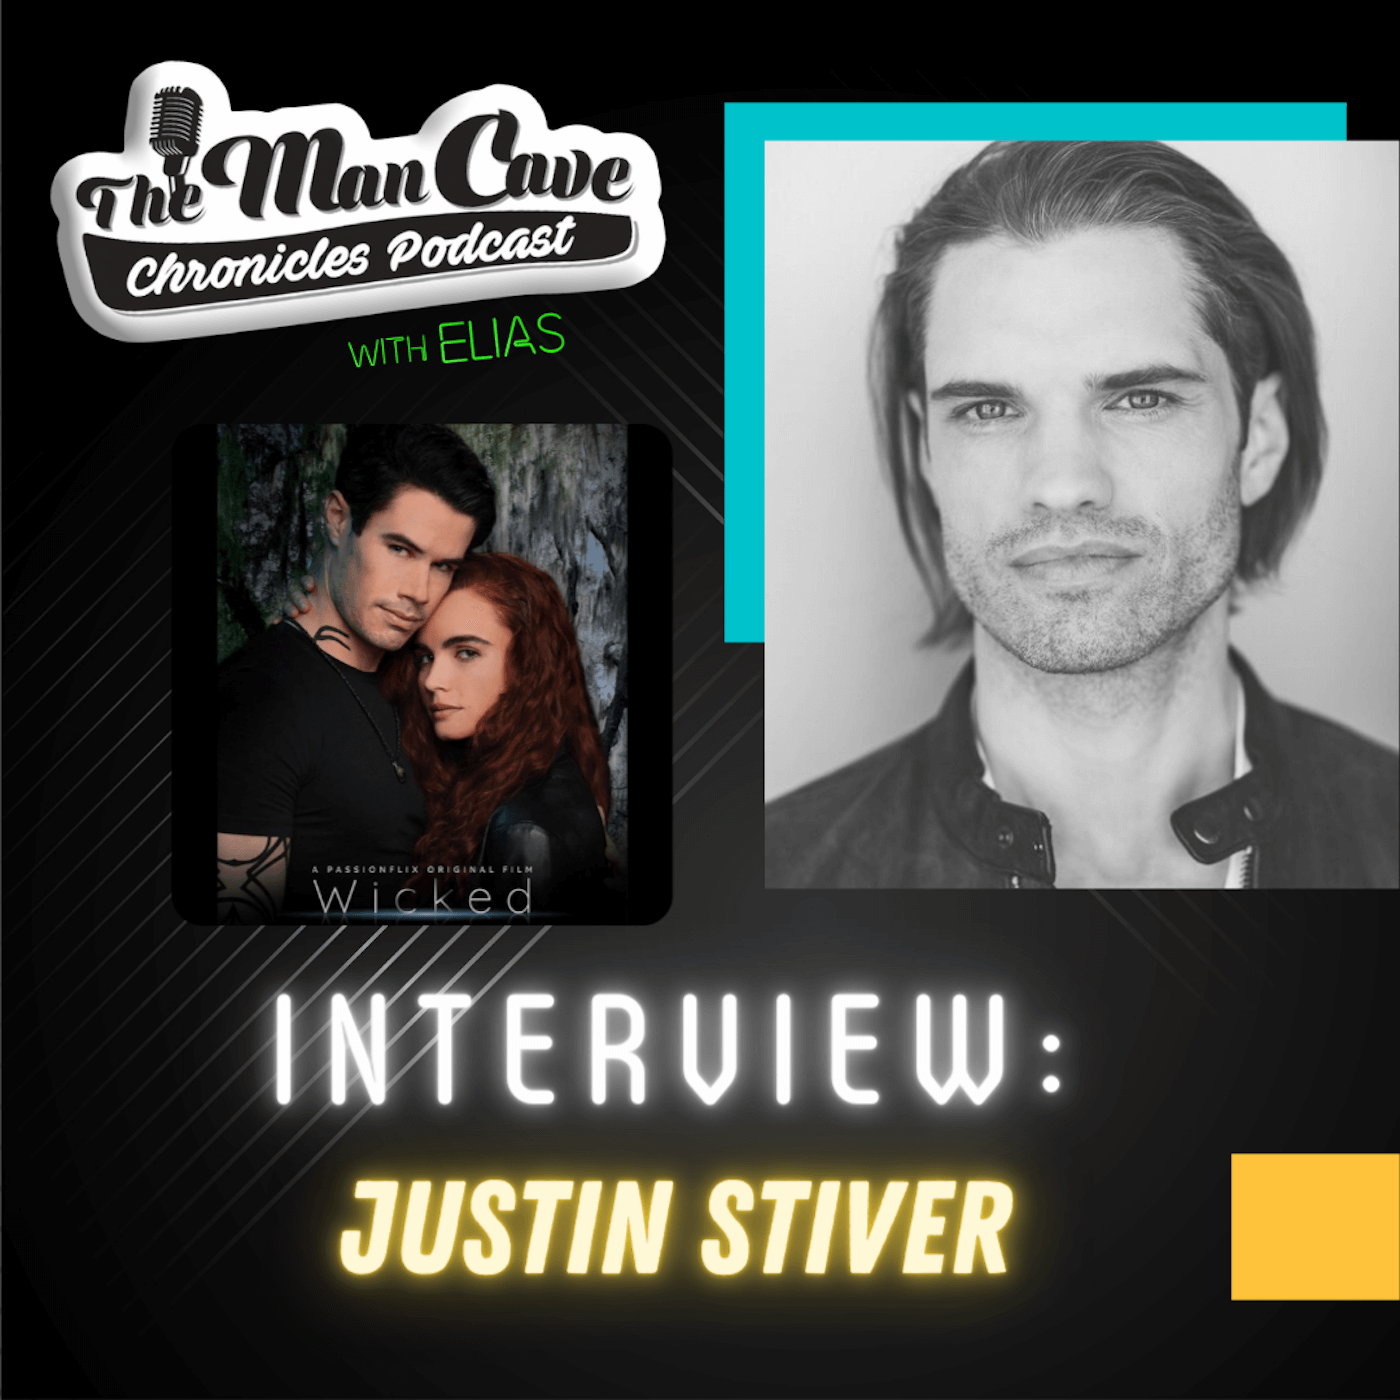 Justin Stiver talks about playing Roman on Passionflix's film Wicked